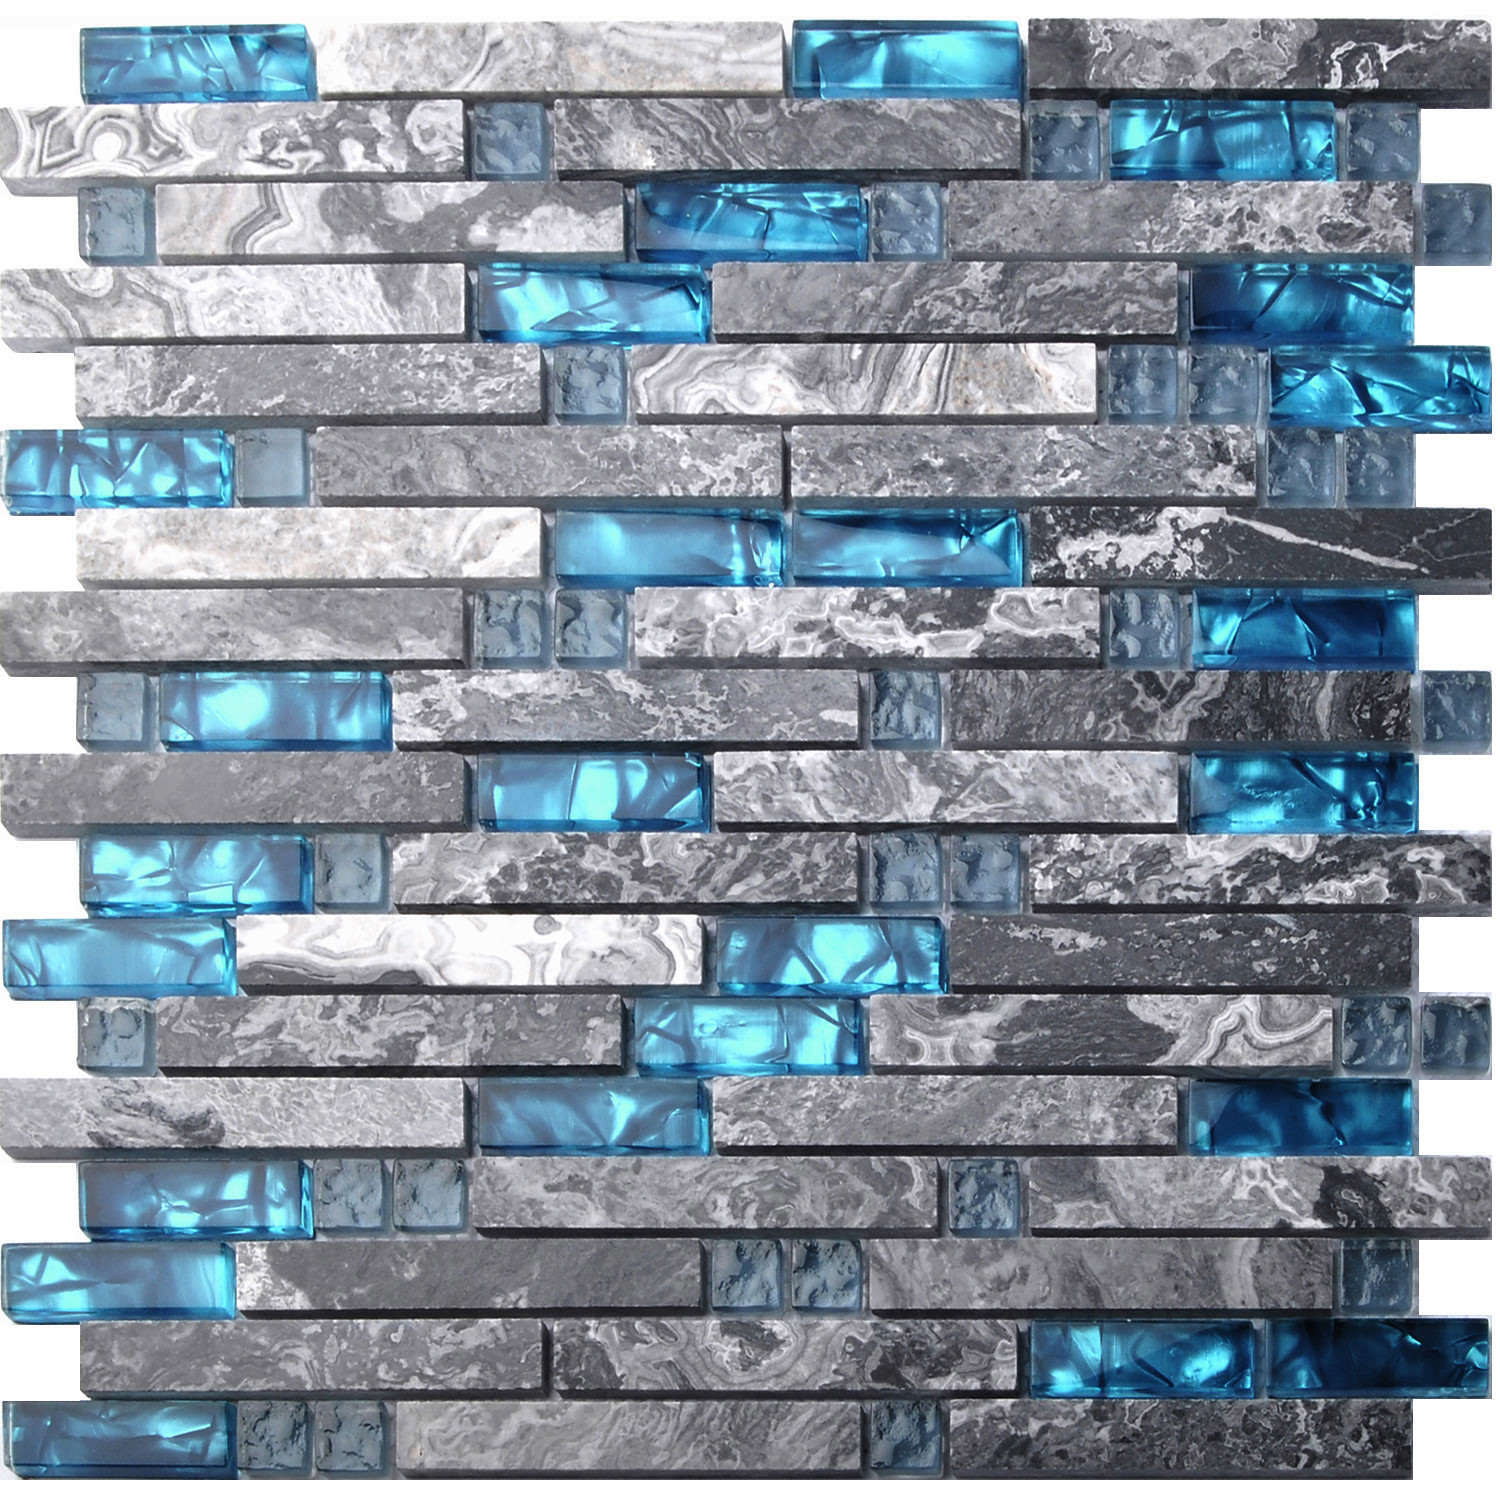 Home building glass tiles wall interlocking gray marble blue sea backsplash tile